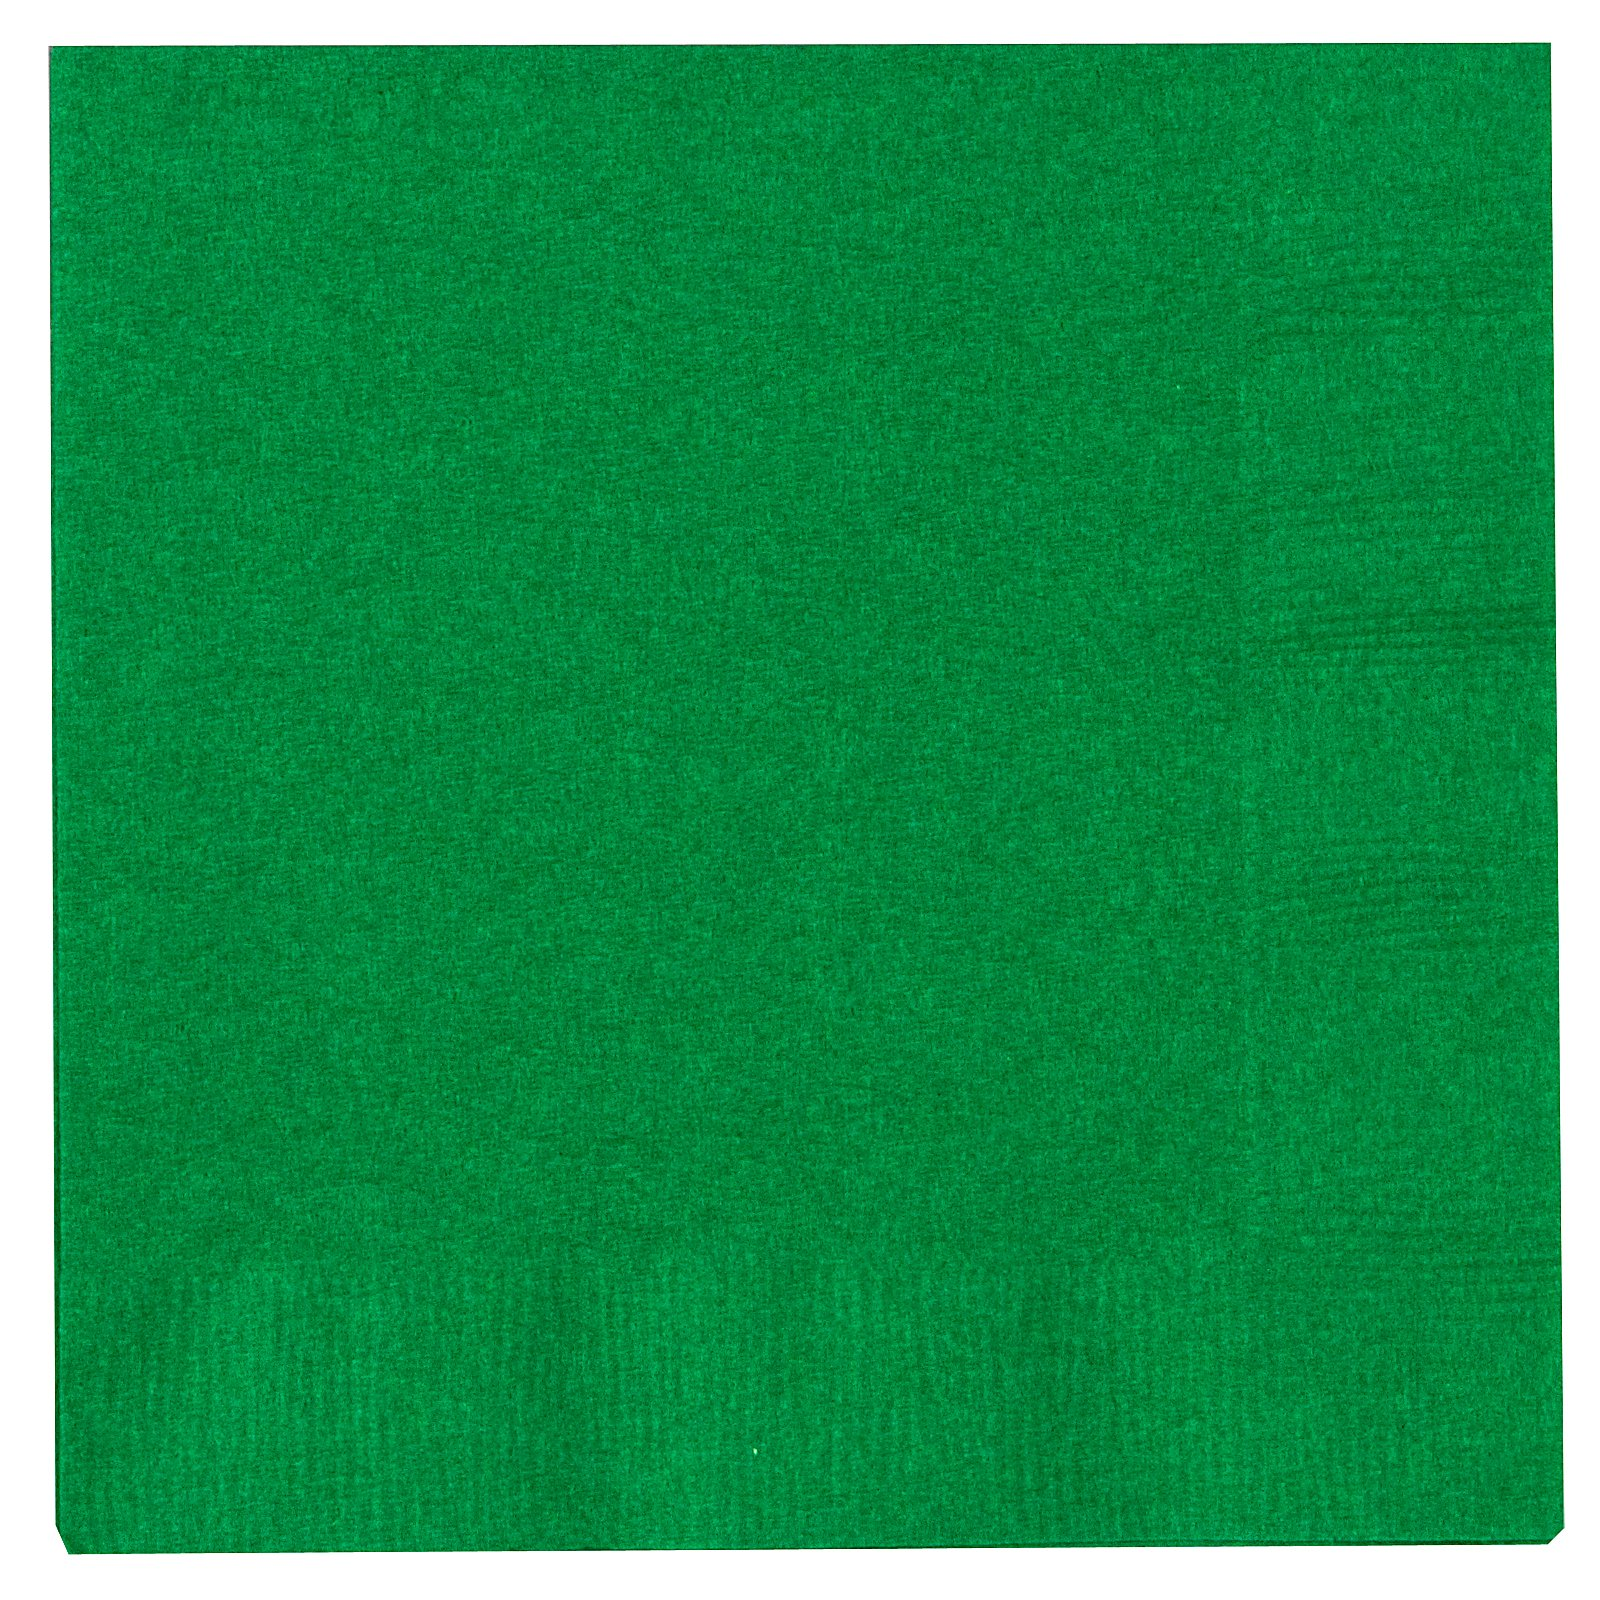 Emerald Green (Green) Beverage Napkins (50 count)